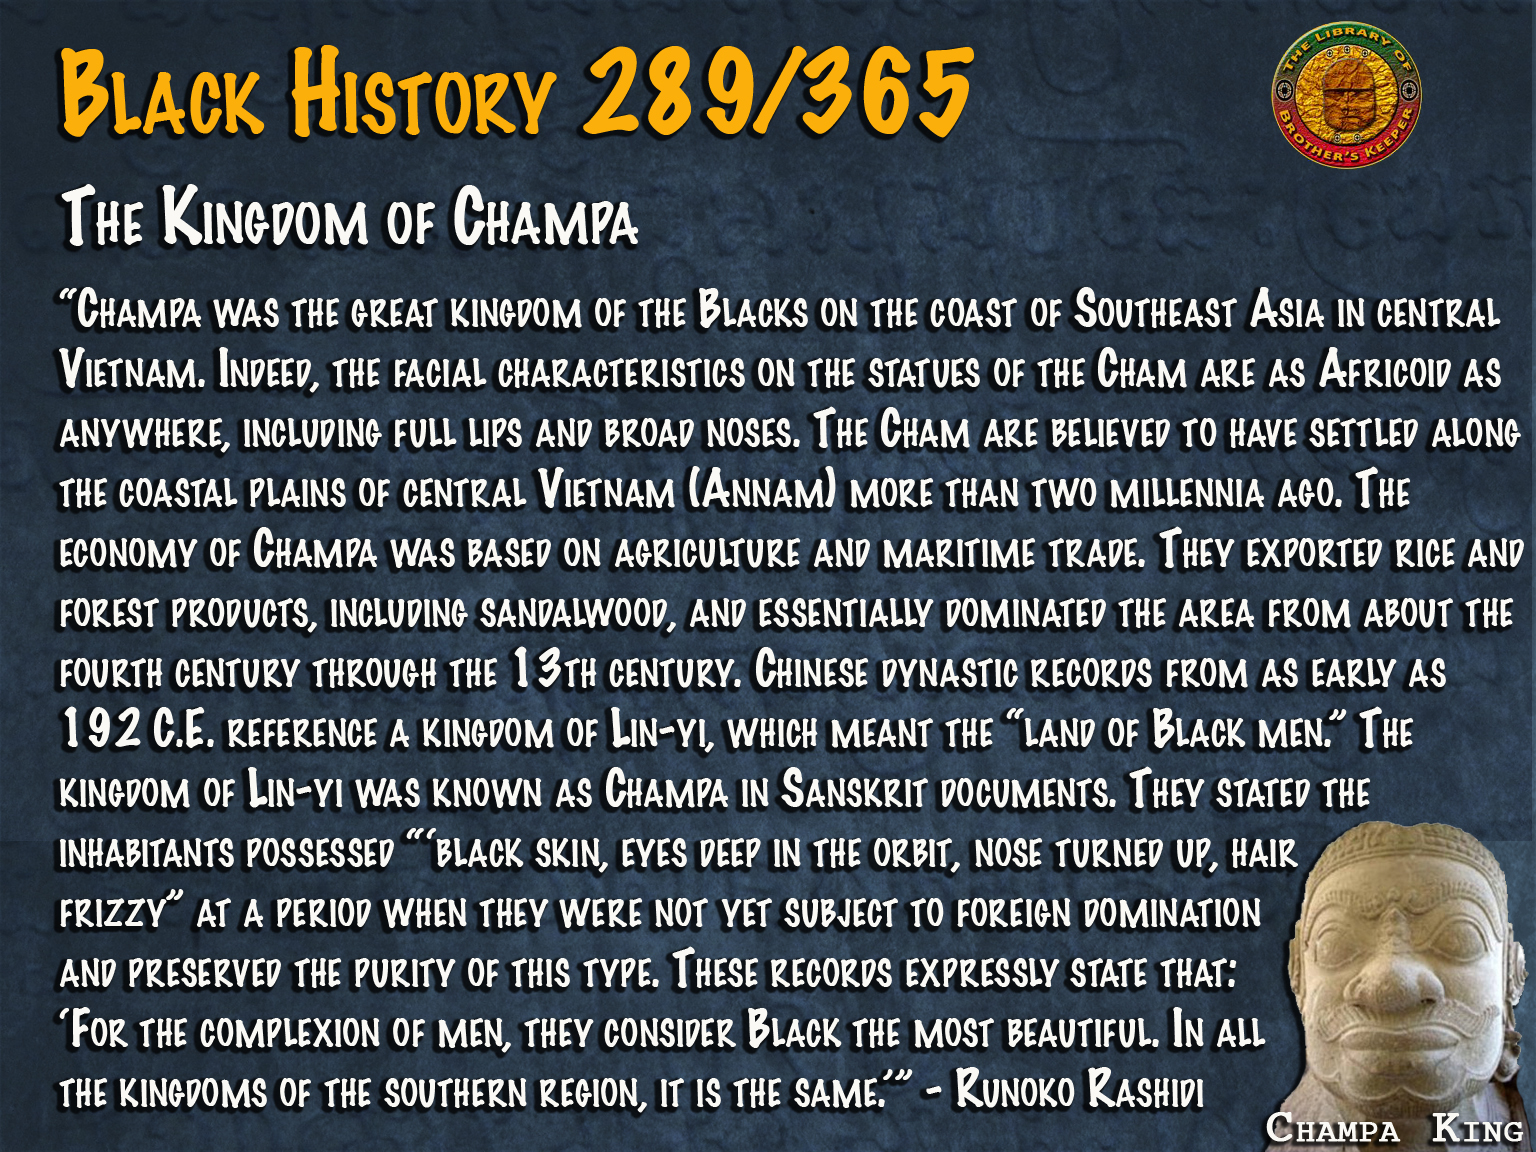 Kingdom of Champa